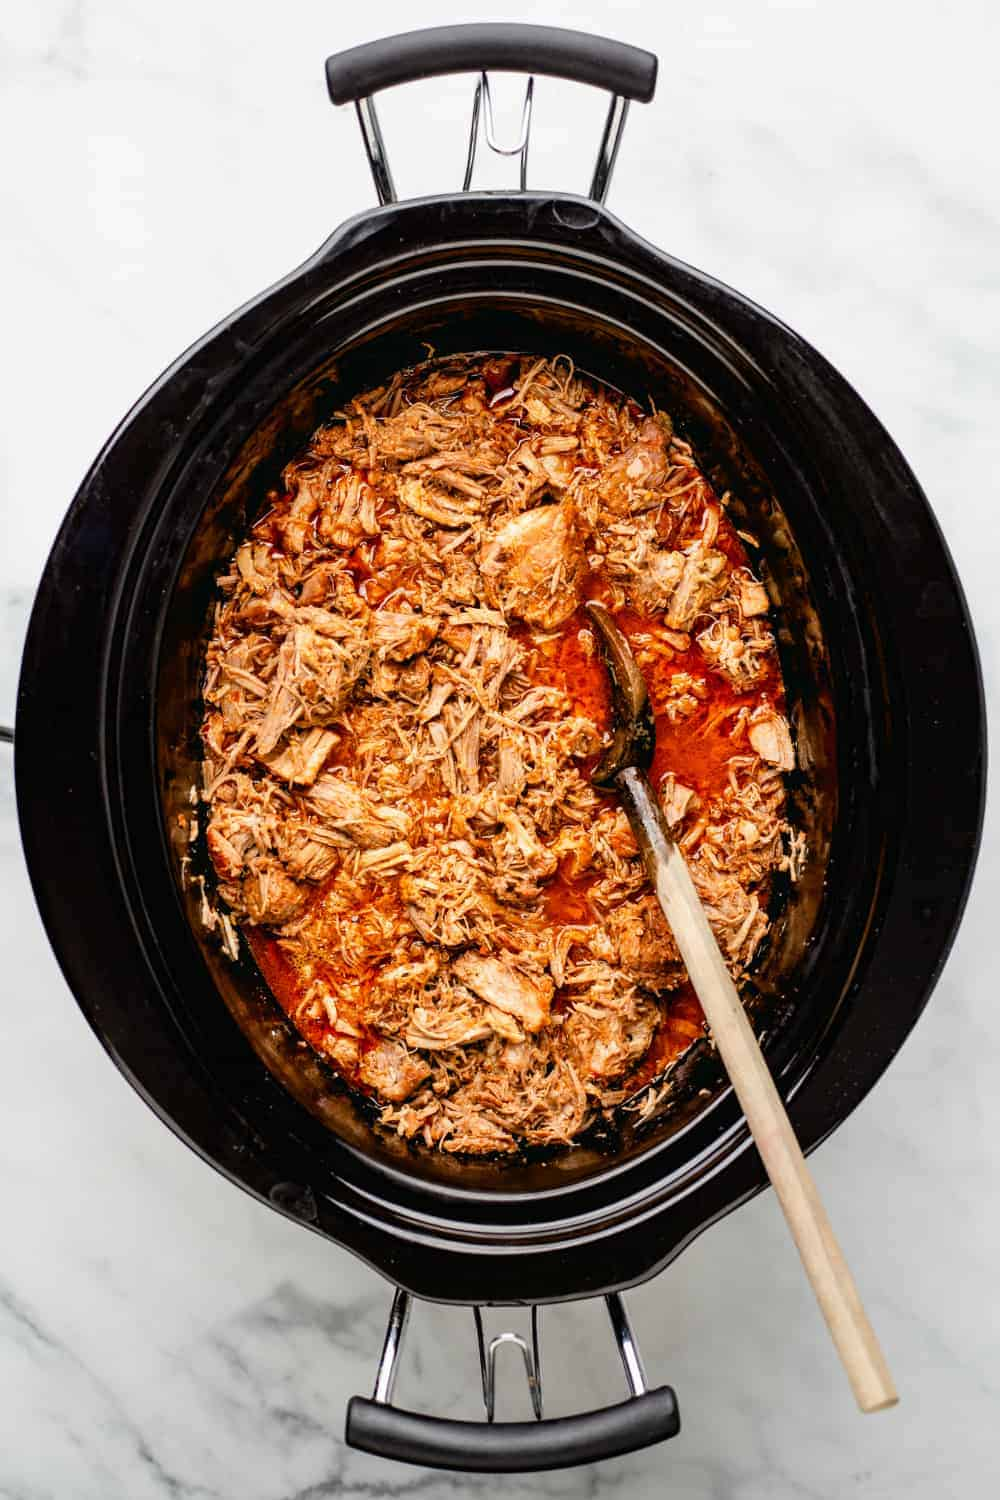 Easy Crockpot Pulled Pork spends the day slow cooking in a tangy cider vinegar sauce for pulled pork that is not only tender and flavorful, it's as easy as can be.